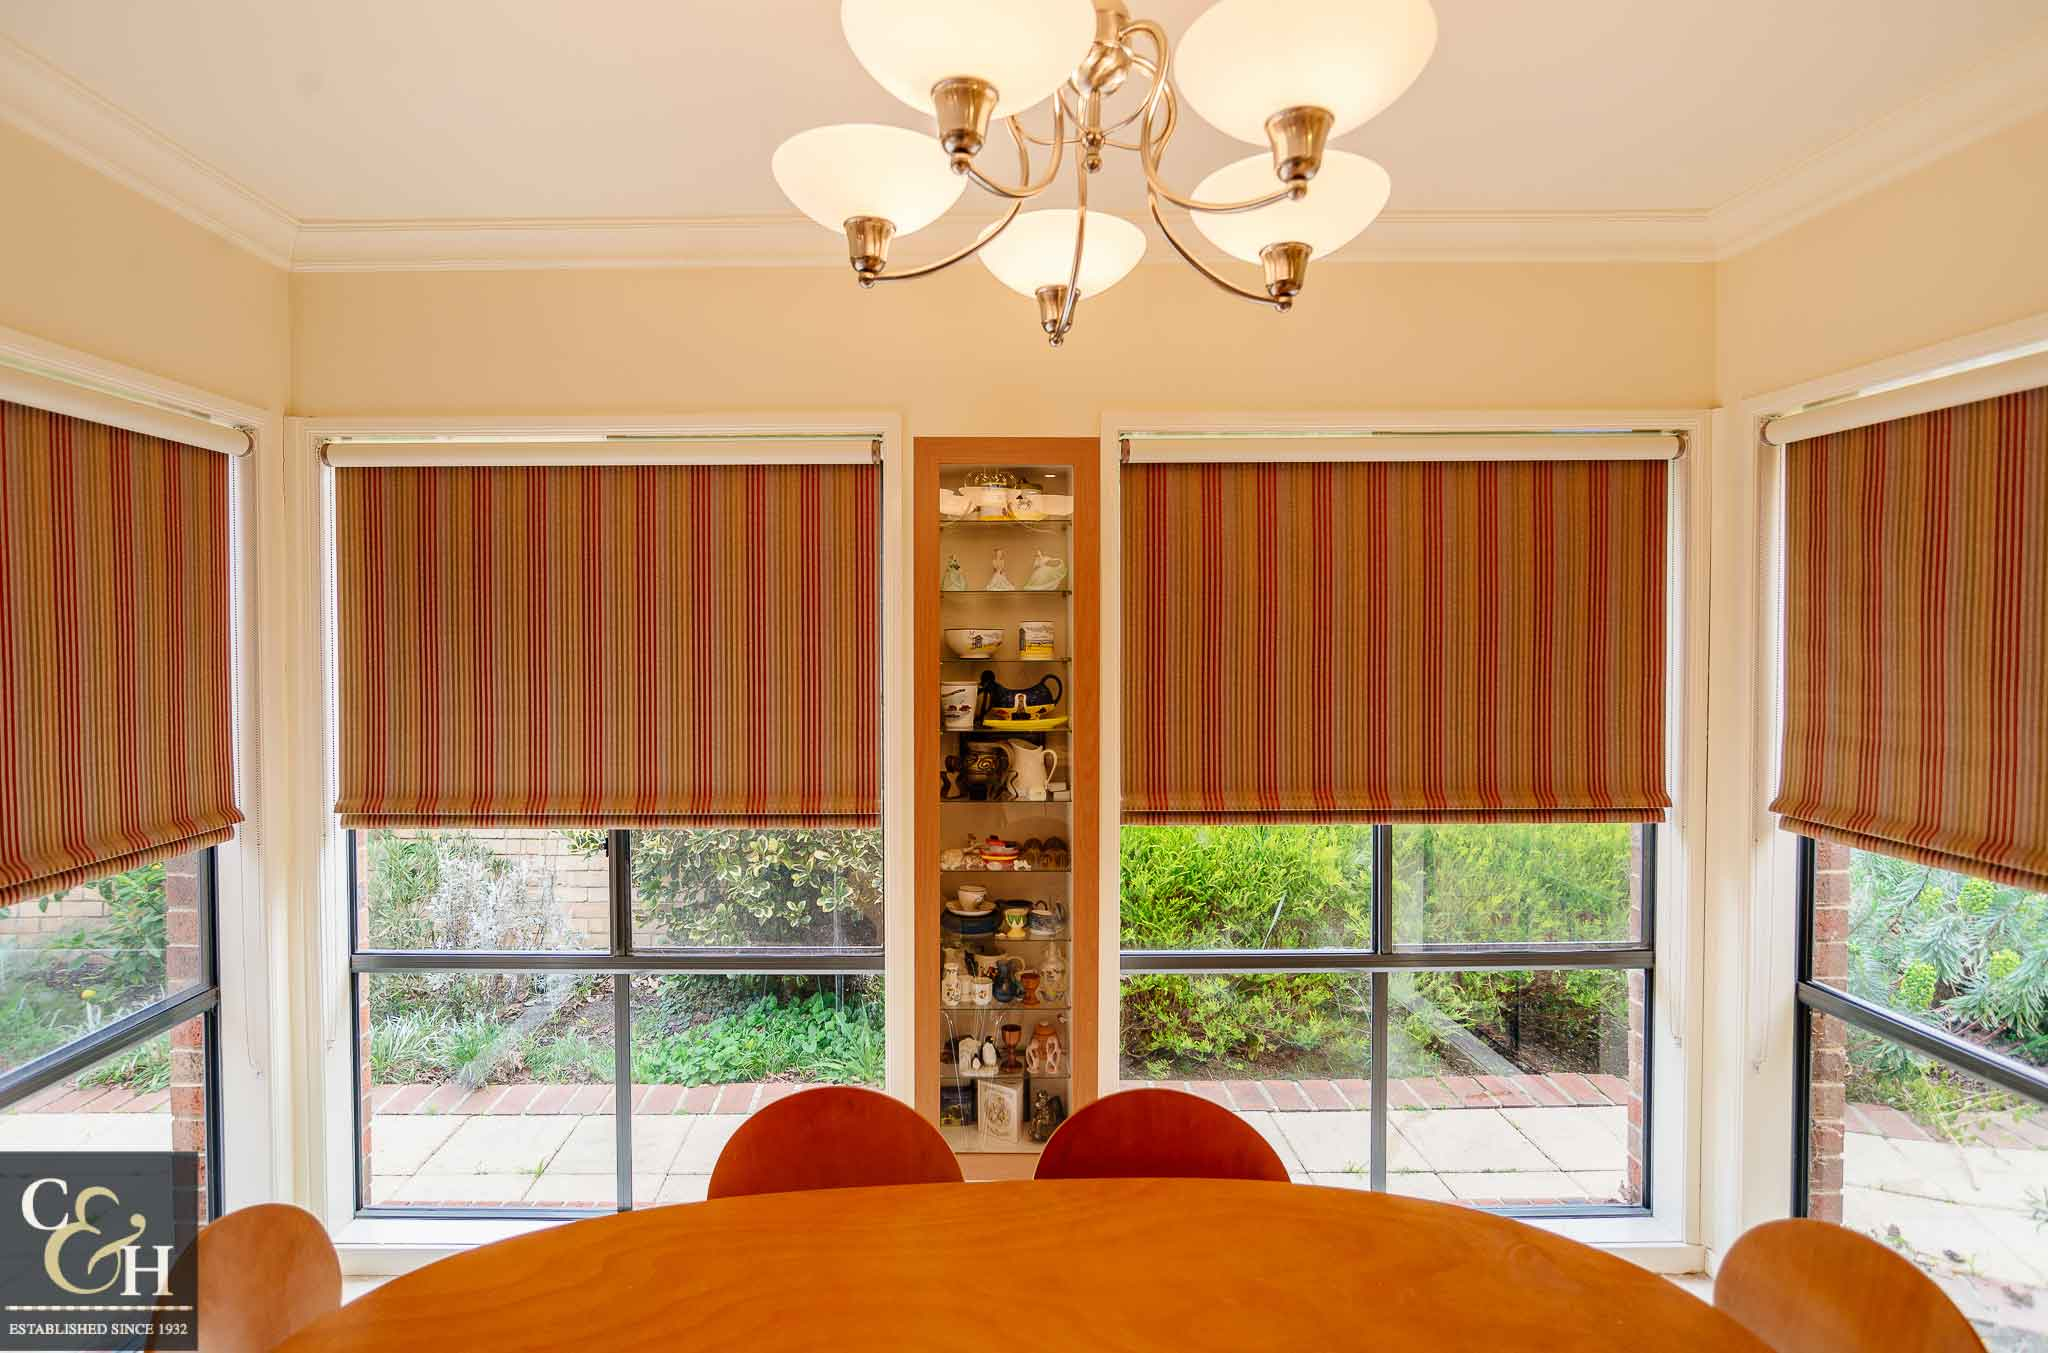 Bonded roller blinds 4.5 inside a house